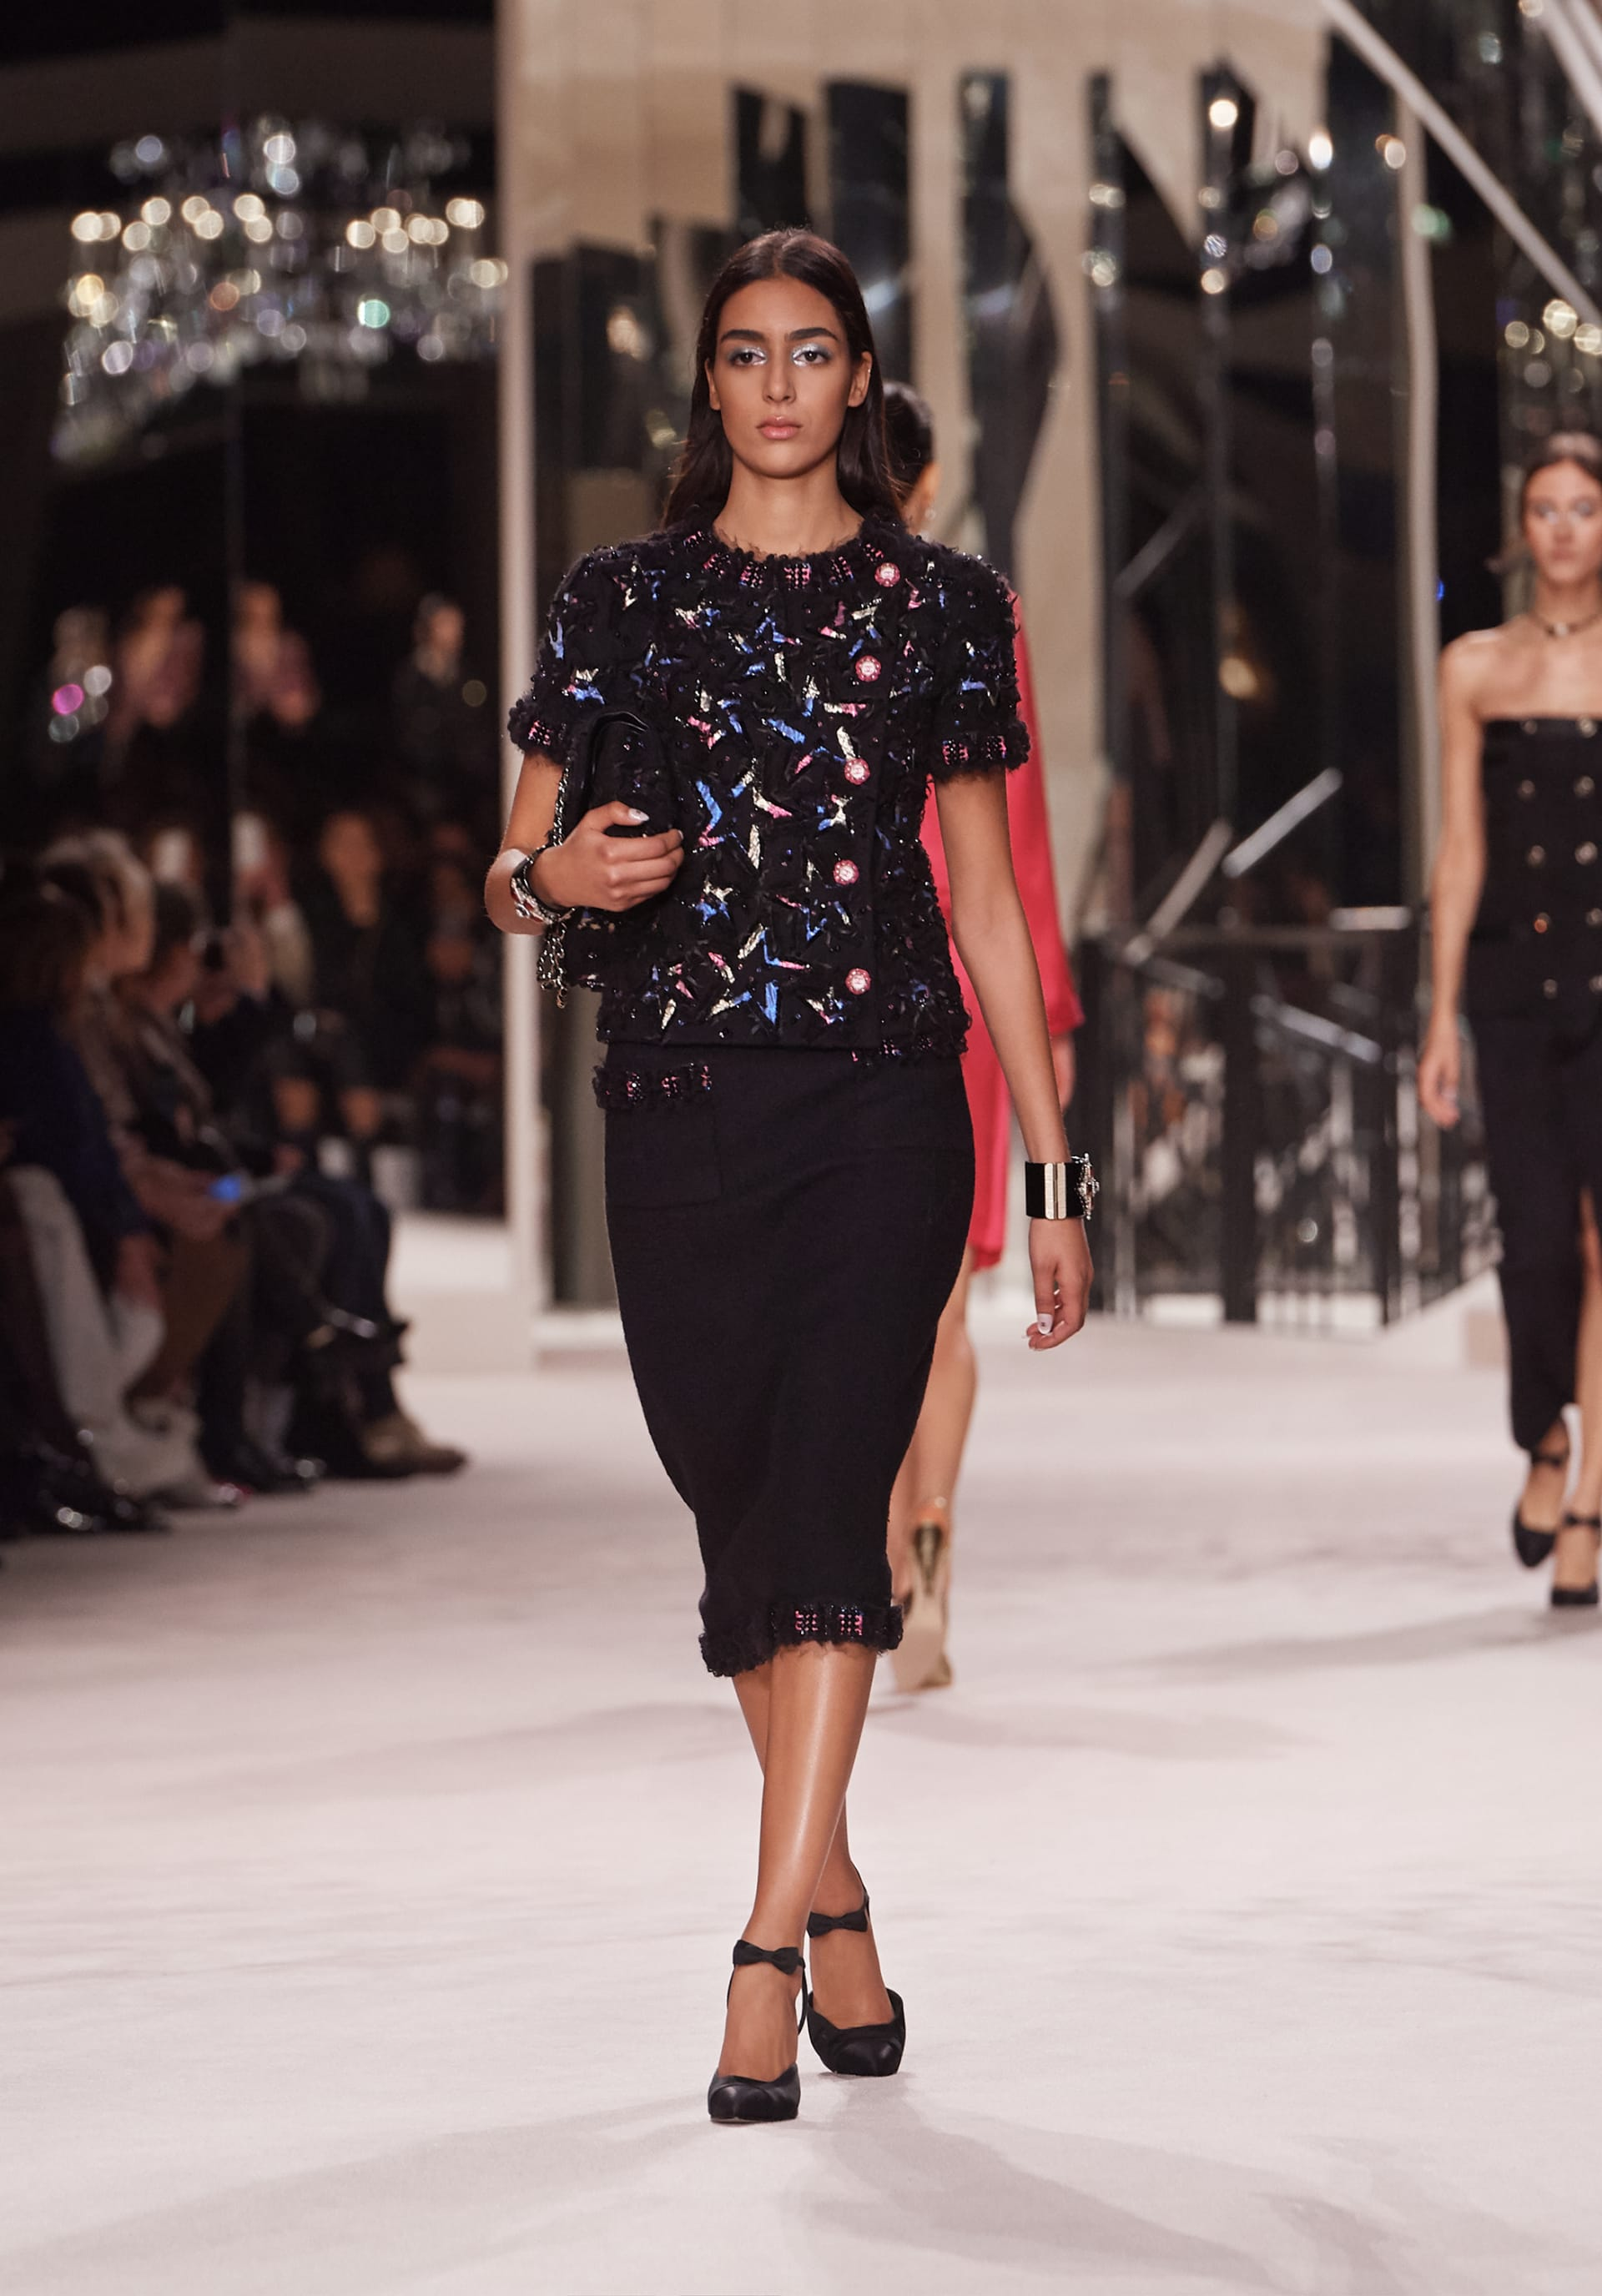 View 1 - Look 43 - Métiers d'Art 2019/20 - see full sized version